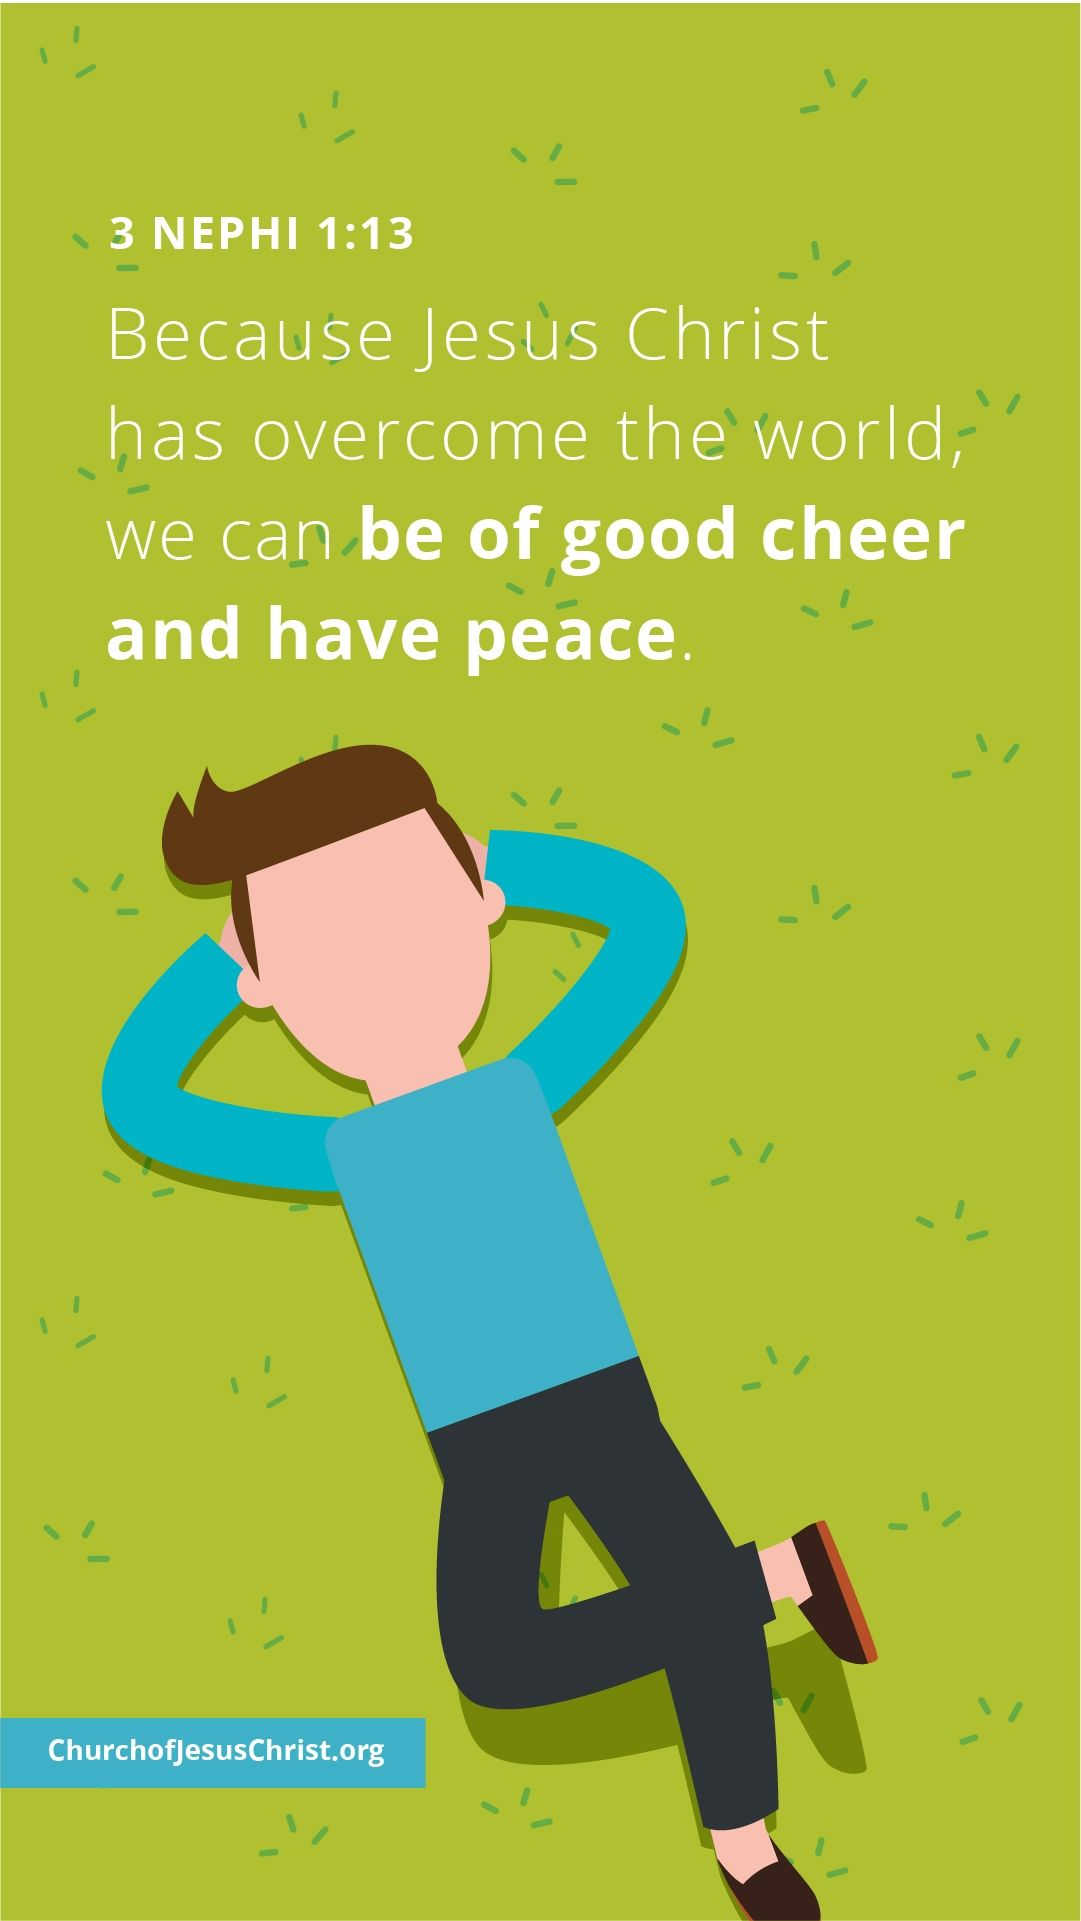 Because Jesus Christ has overcome the world, we can be of good cheer and have peace. — See 3Nephi 1:13